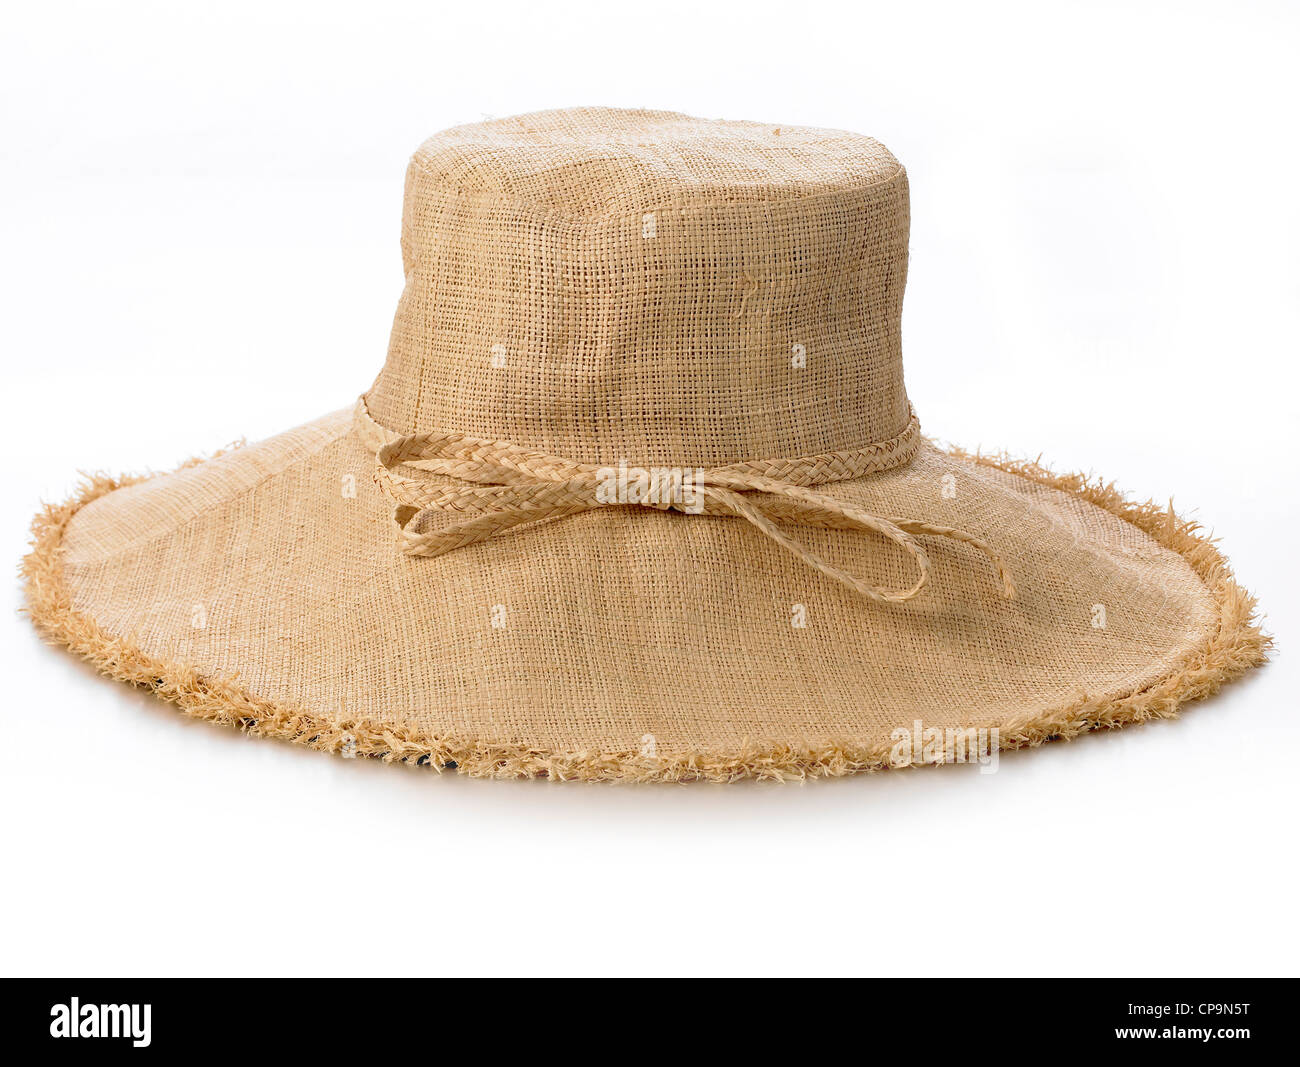 wide brimmed ladies linen look straw colored hat - Stock Image